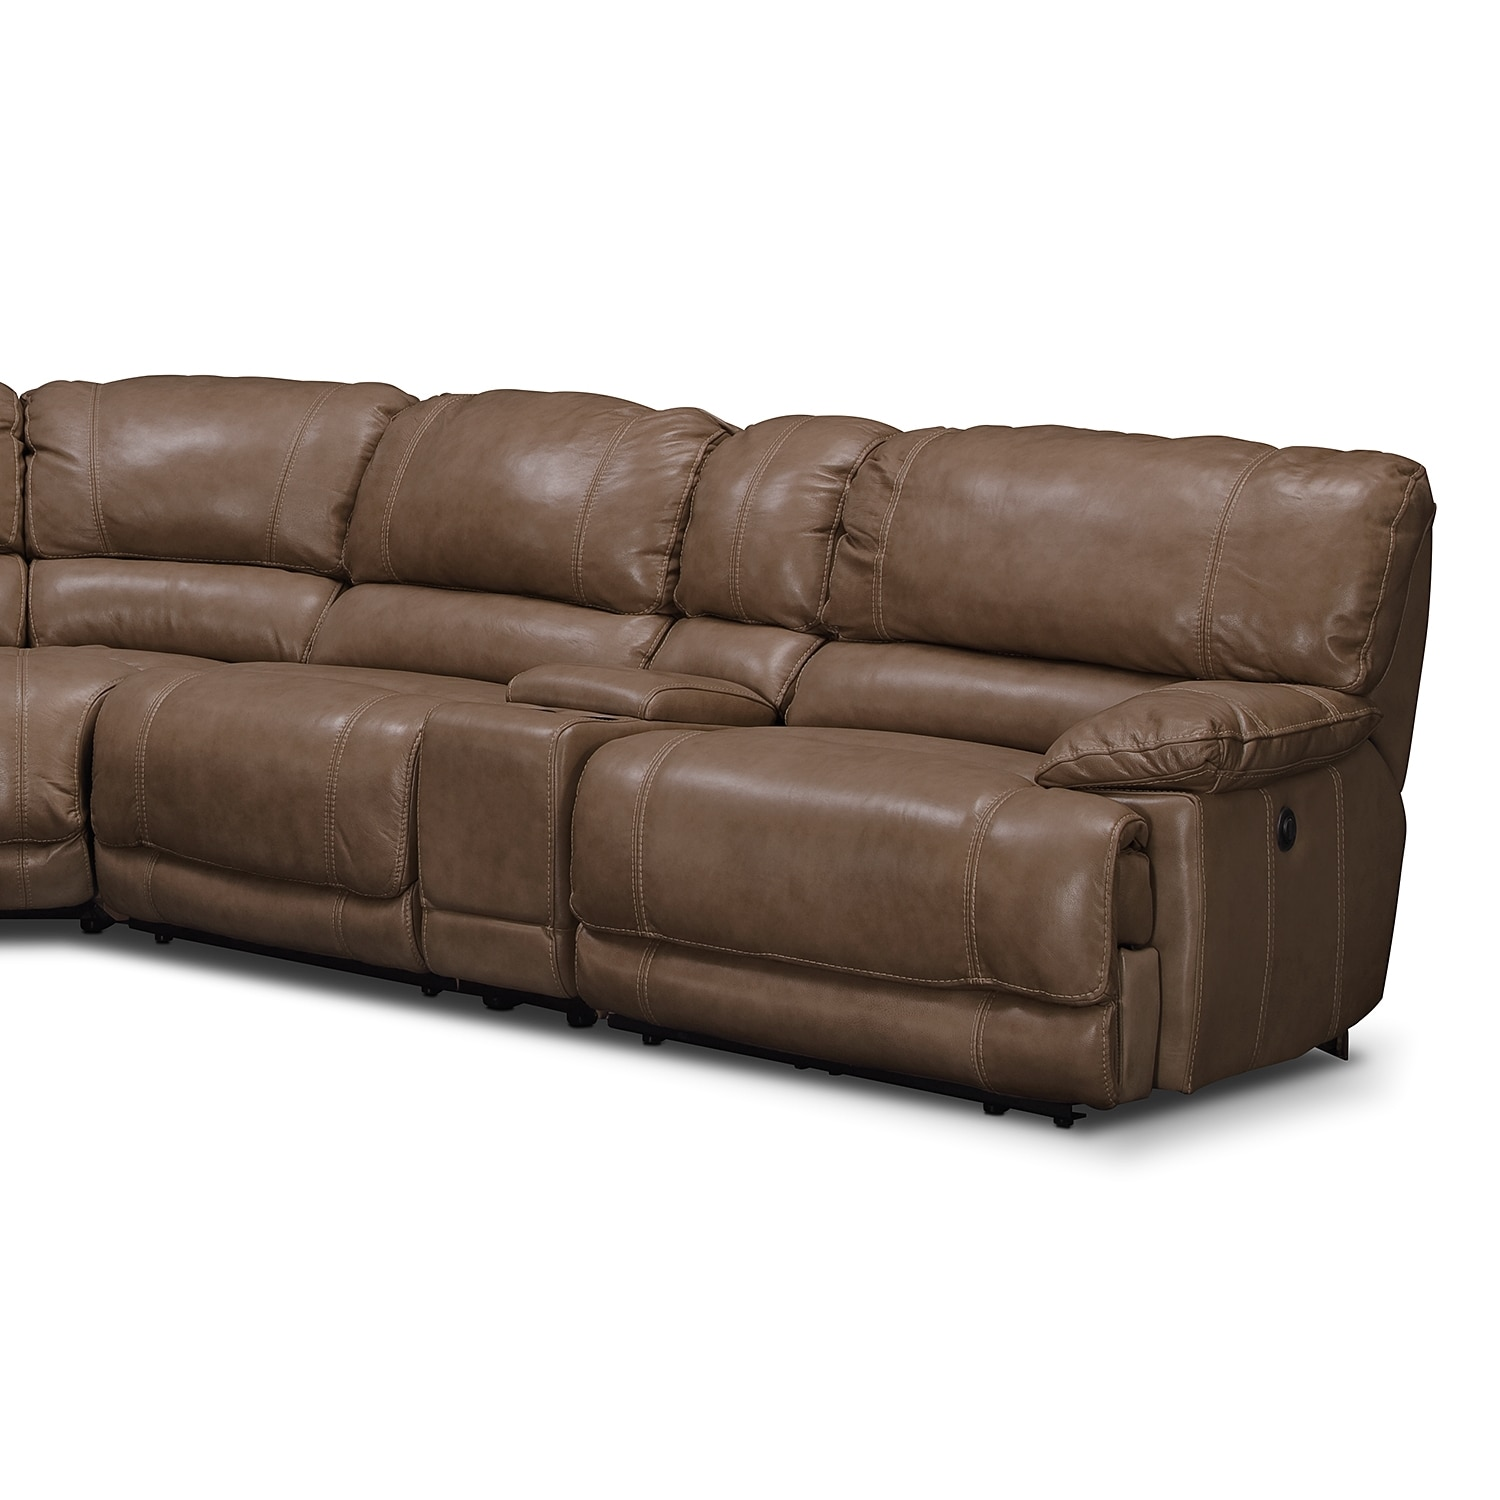 St malo 6 piece power reclining sectional with modular for Modular sectional sofa with recliner